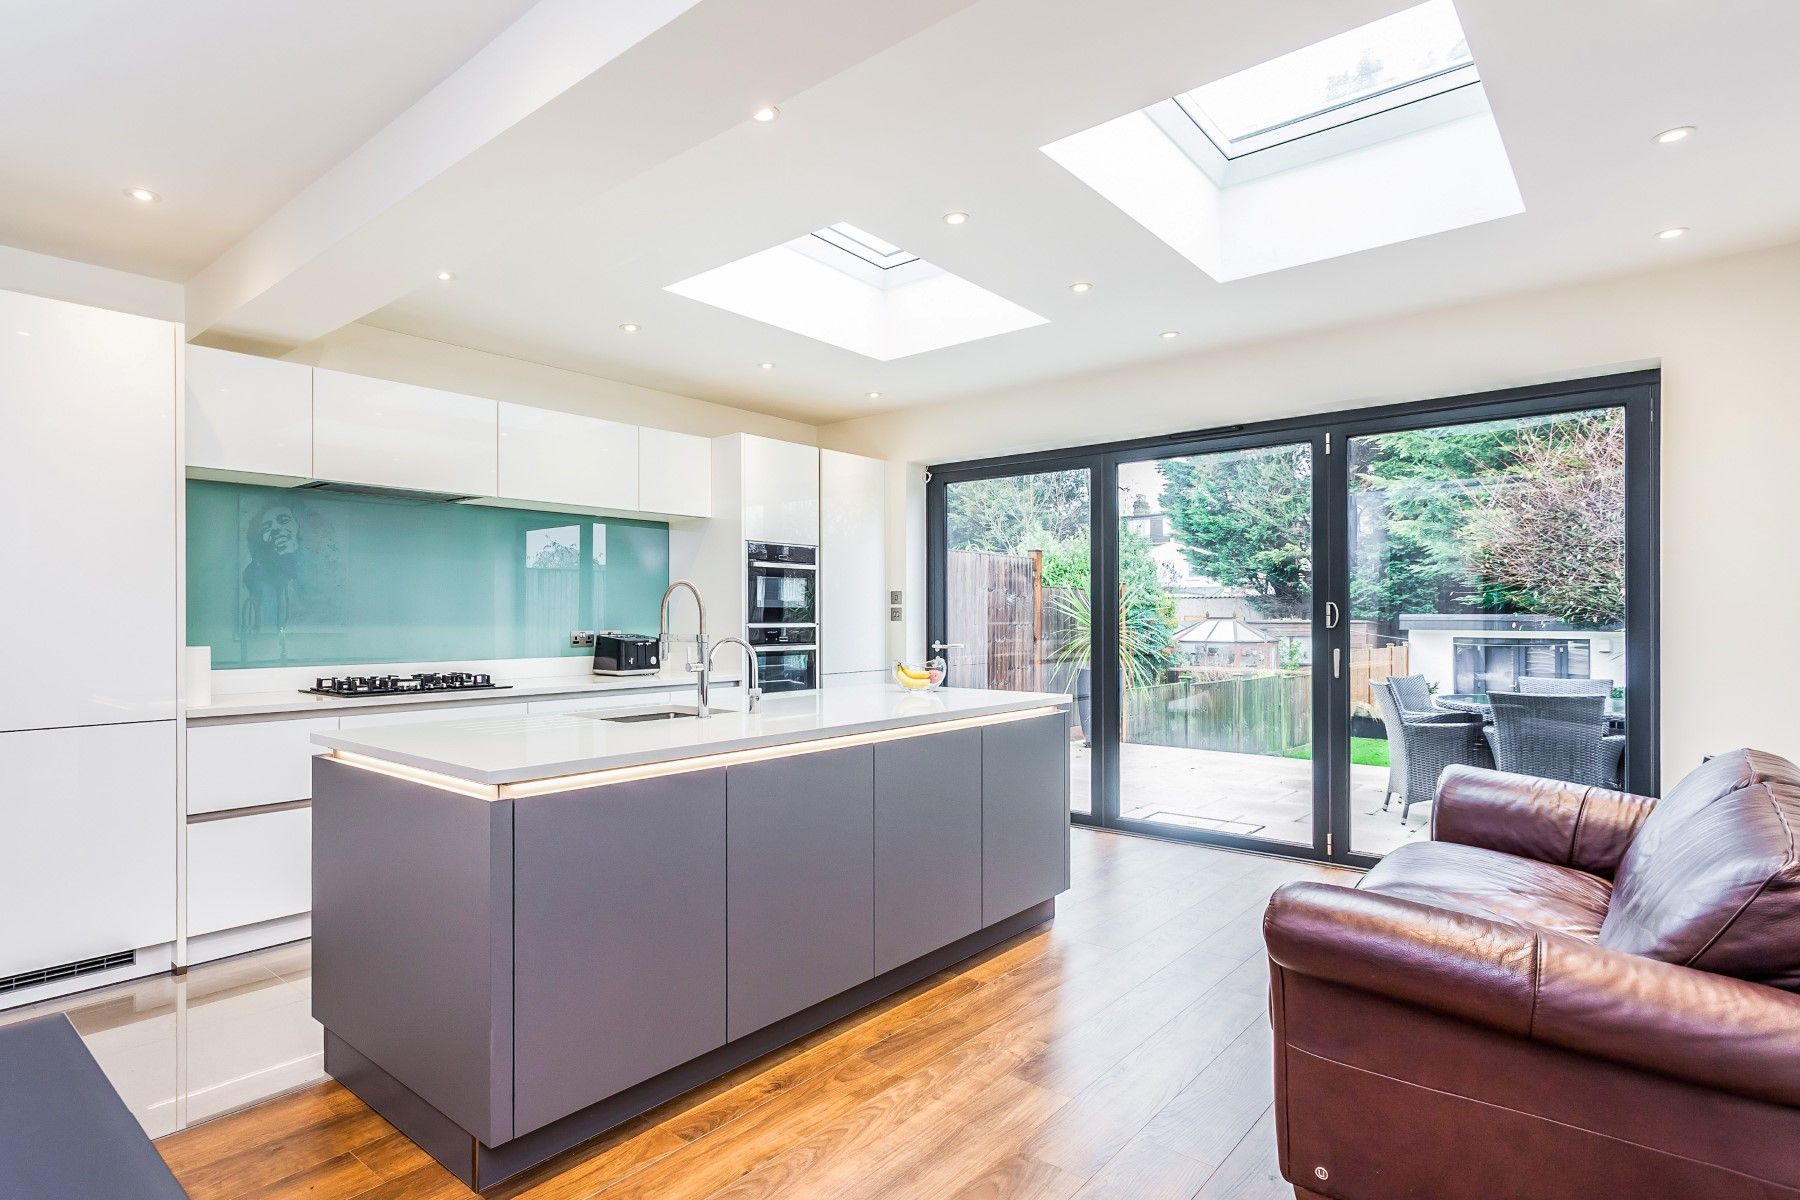 Our beautiful Nolte Handleless Kitchen in Feel White and Quartz Grey ...